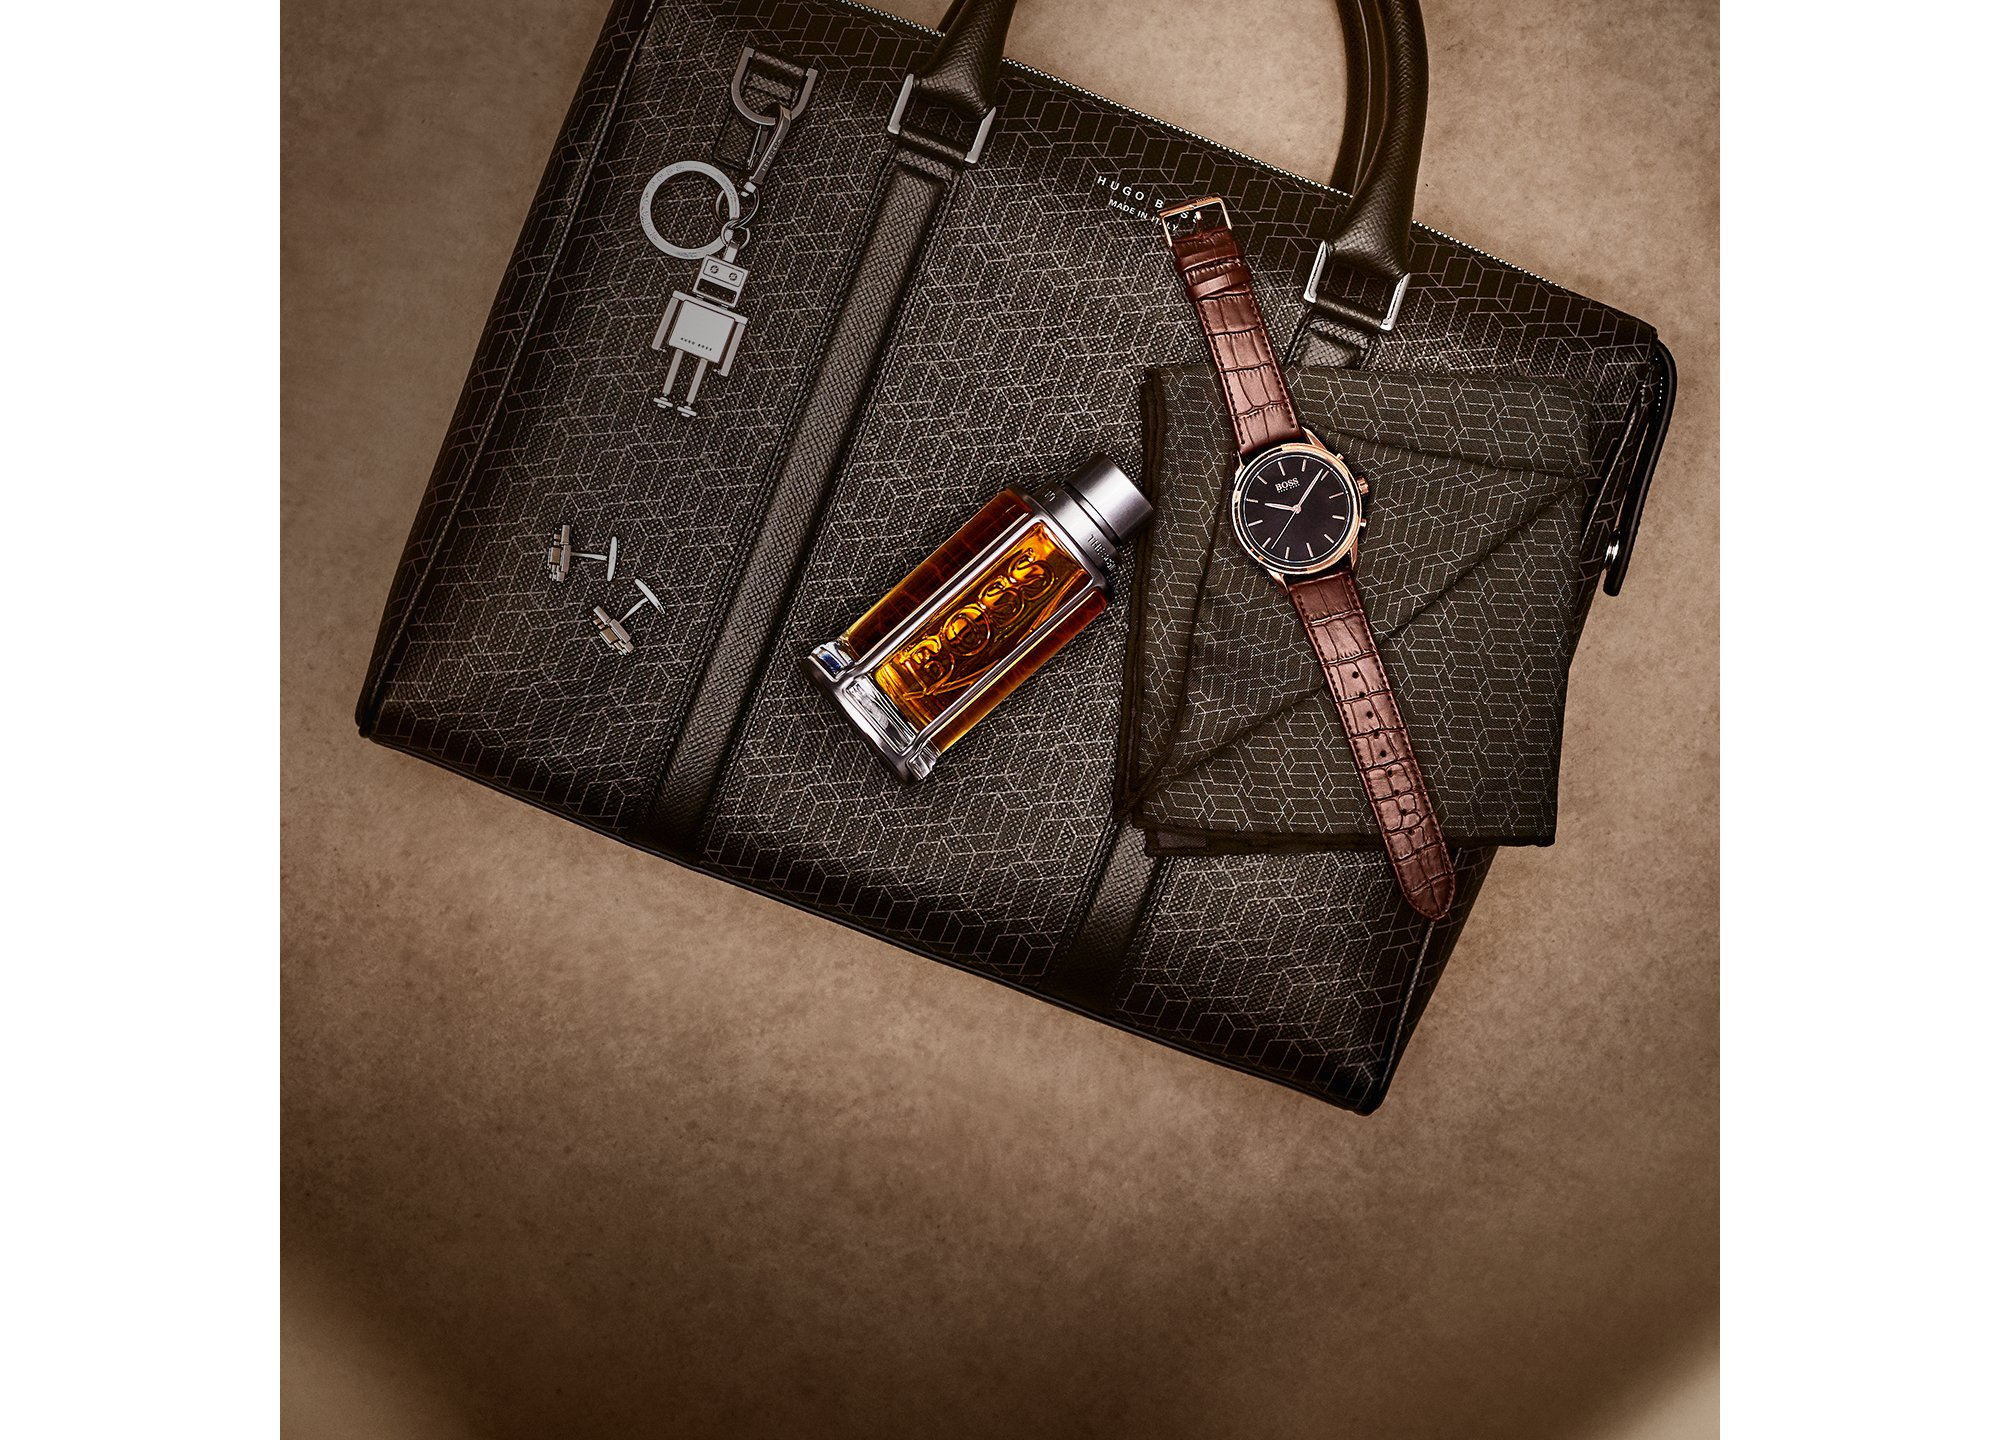 Leather bag, watch, BOSS The Scent for him by BOSS